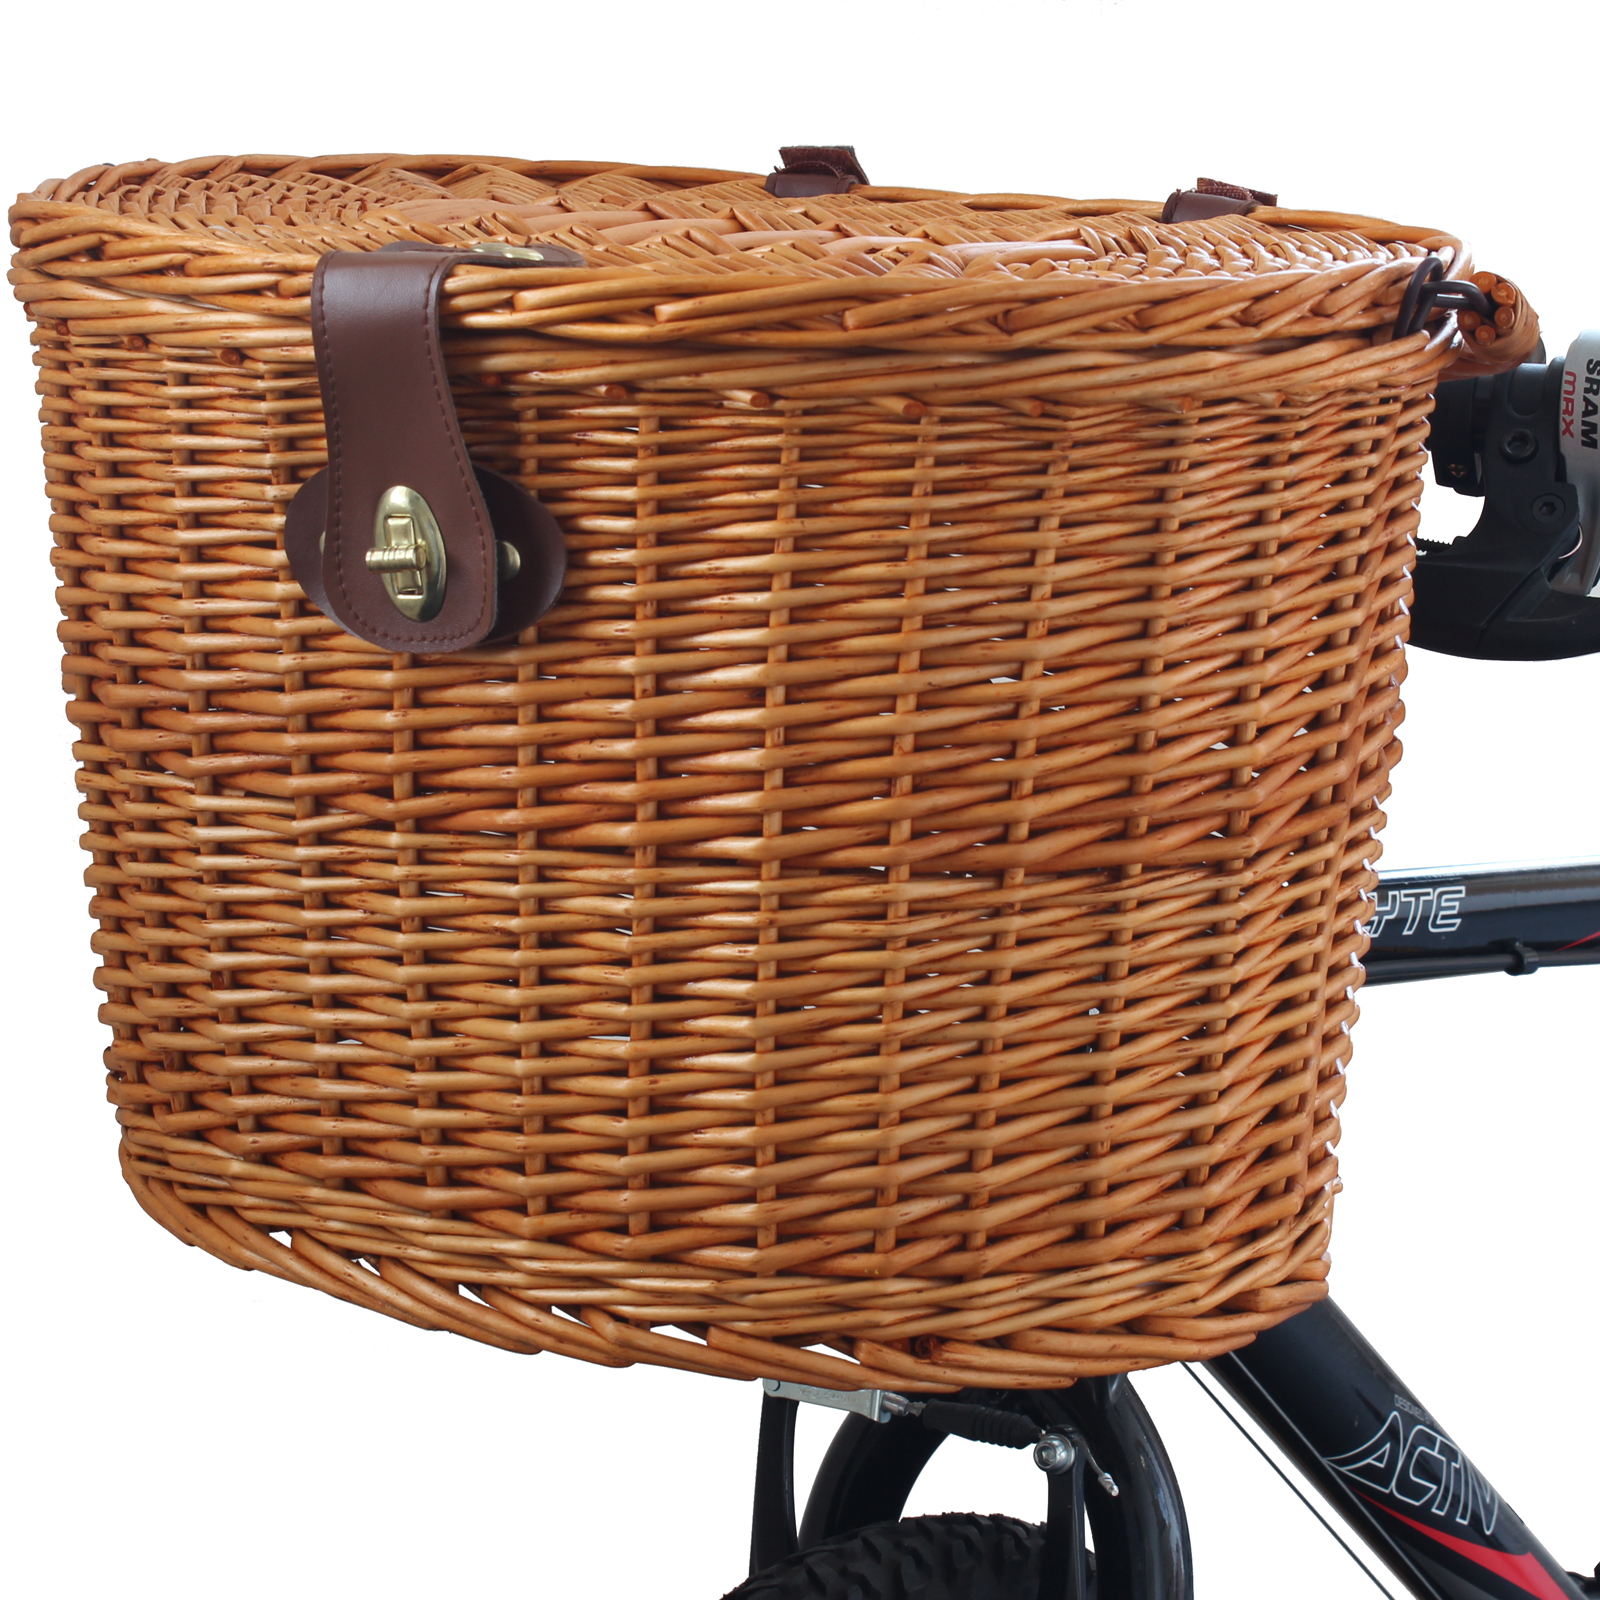 Wicker Bike Basket With Handle : Wicker bicycle front picnic basket with lid carry handle